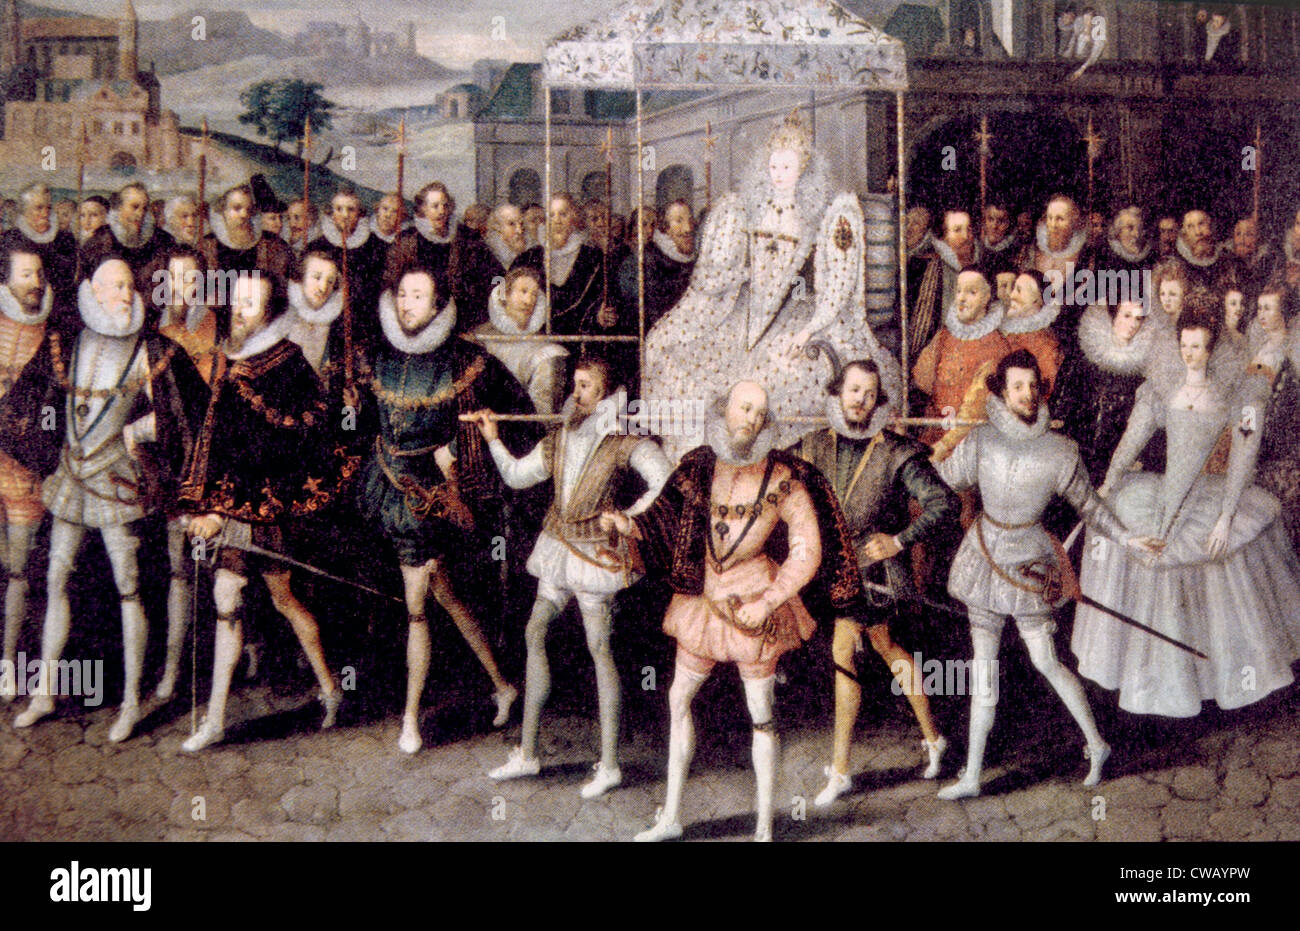 QUEEN ELIZABETH I, (1533-1603), Queen of England 1558-1603, being carried  by her courtiers.